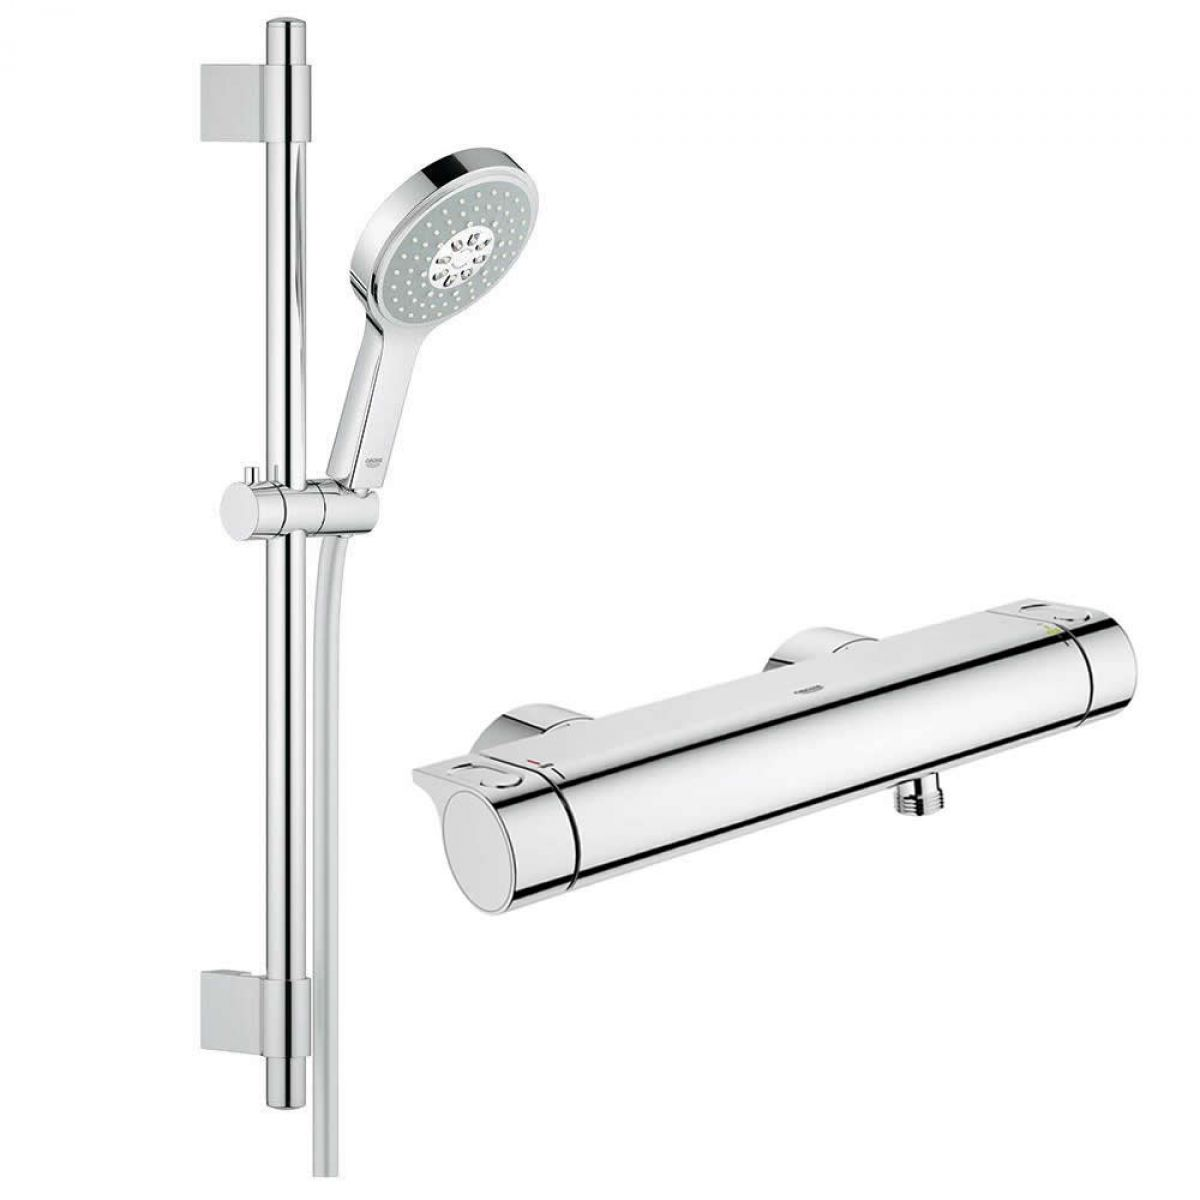 Grohe 2000 Grohe Grohtherm 2000 Thermostatic Shower Mixer With Power Soul Cosmopolitan Shower Set